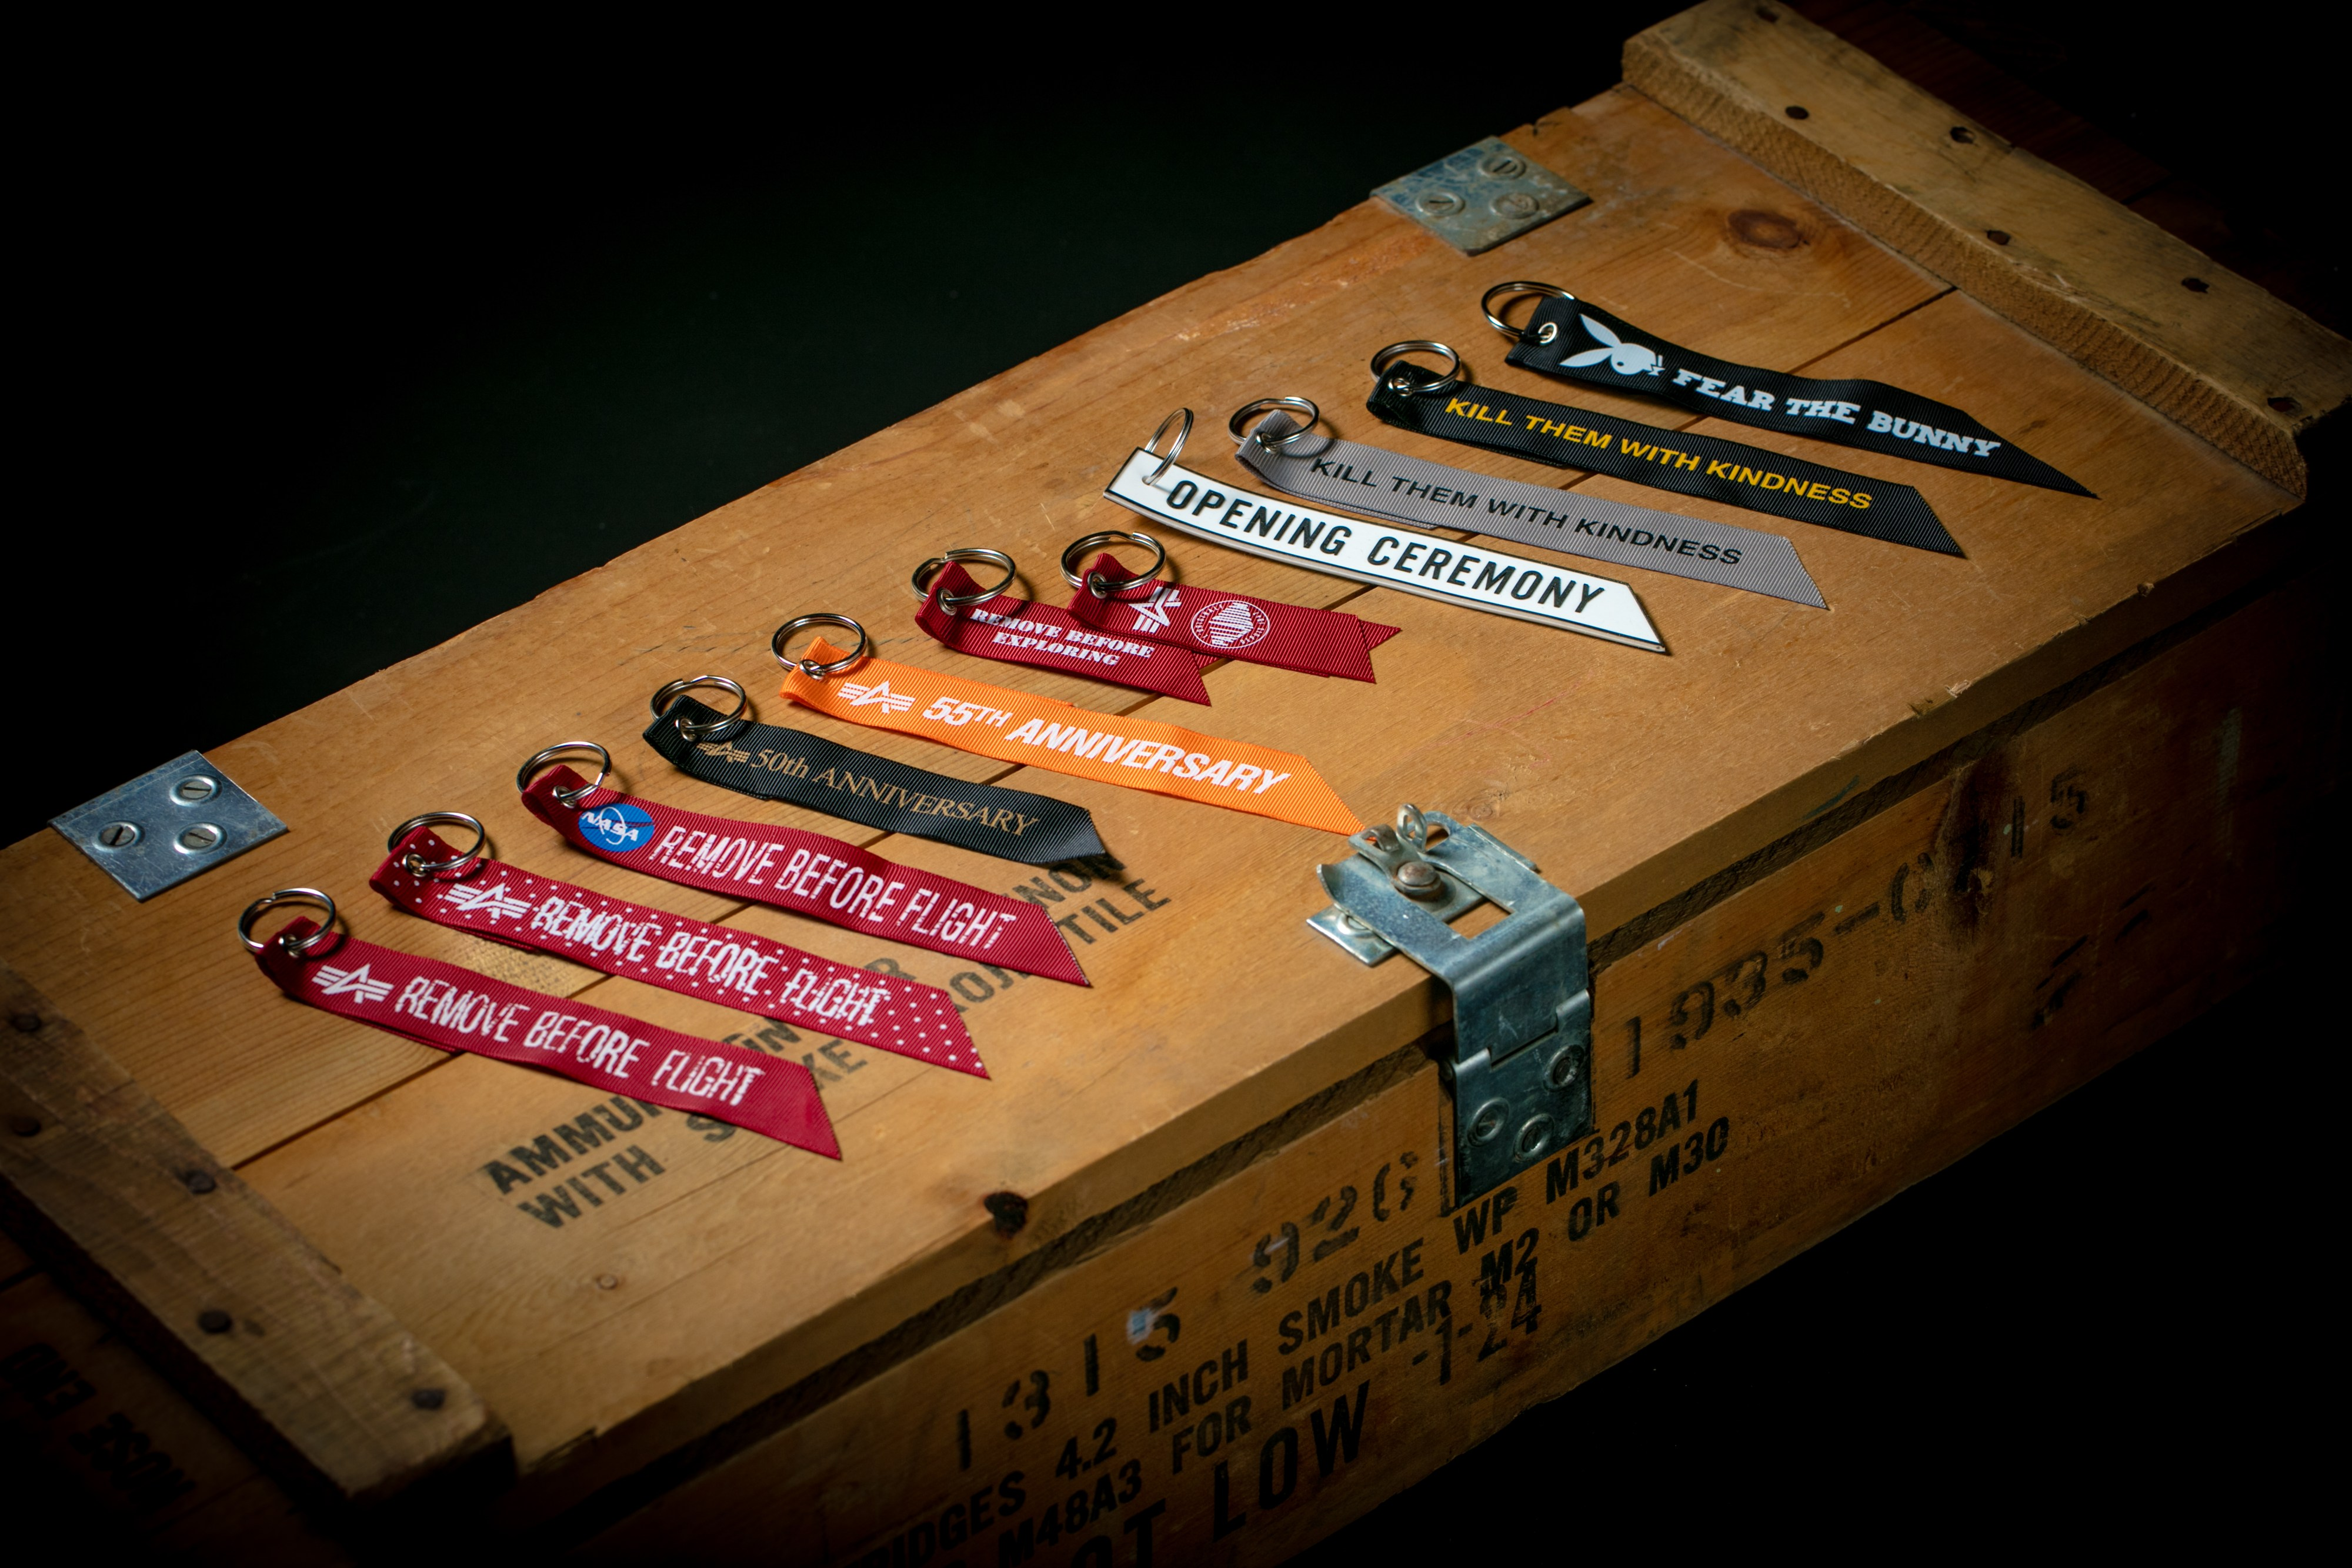 Remove-Before-Flight-Tags